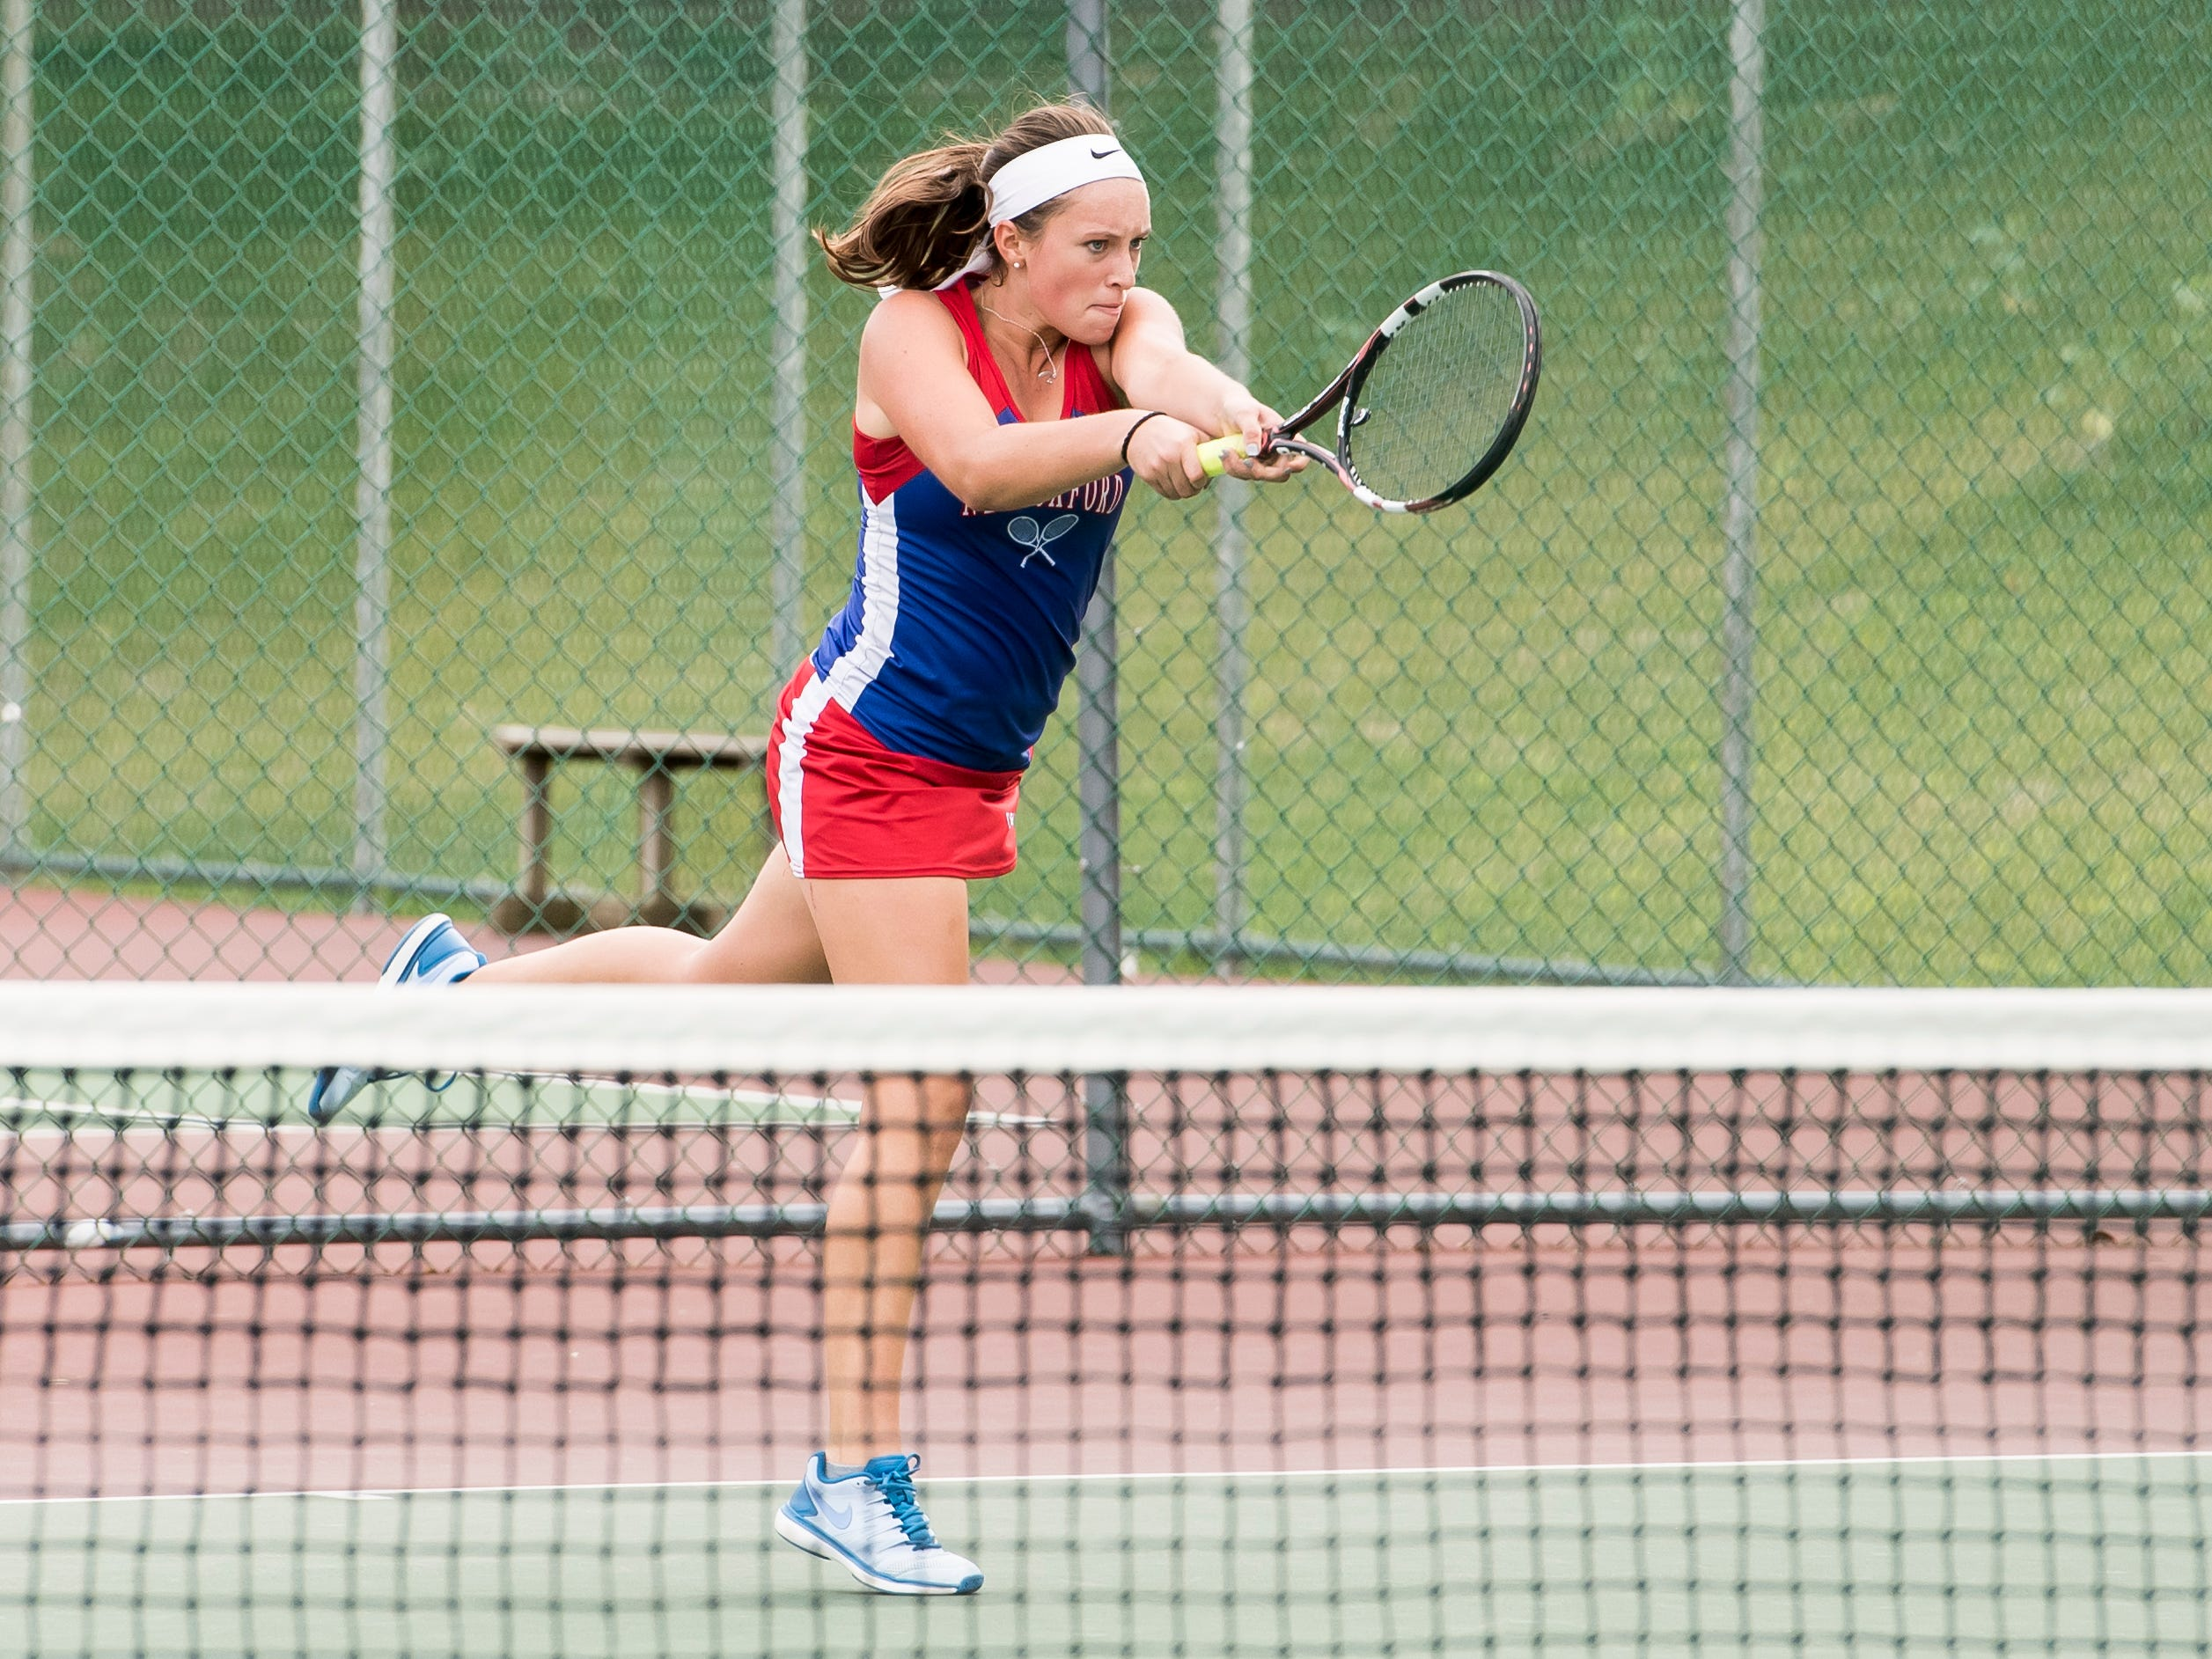 New Oxford's Kasi Conjack follows through on a swing during the No. 2 singles match against South Western's Emma Hynson on Tuesday, October 2, 2018. Conjack won 3-6, 6-3, 6-2.